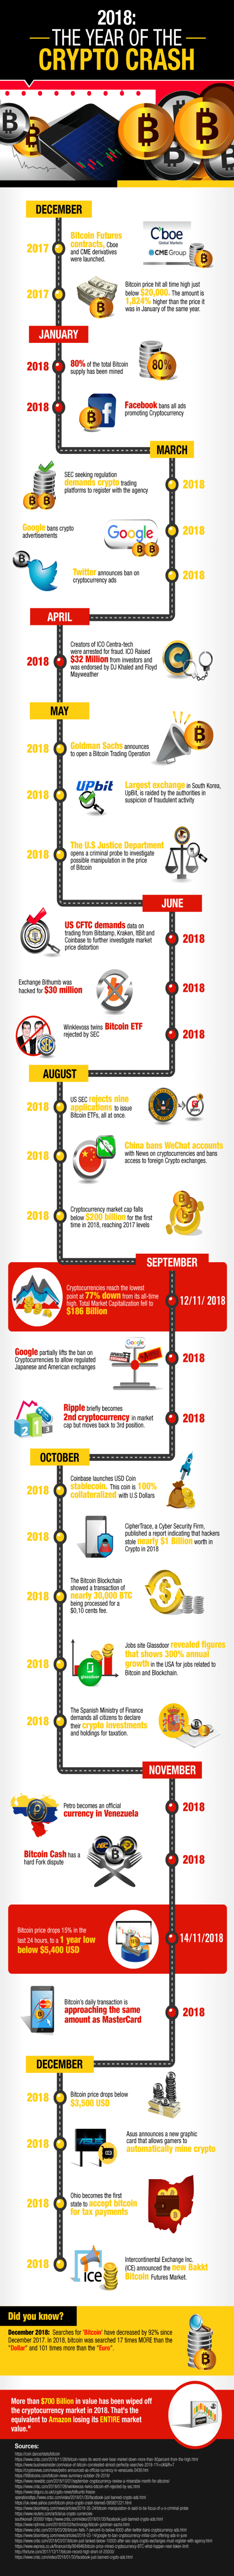 Year of the Crypto Crash infographic